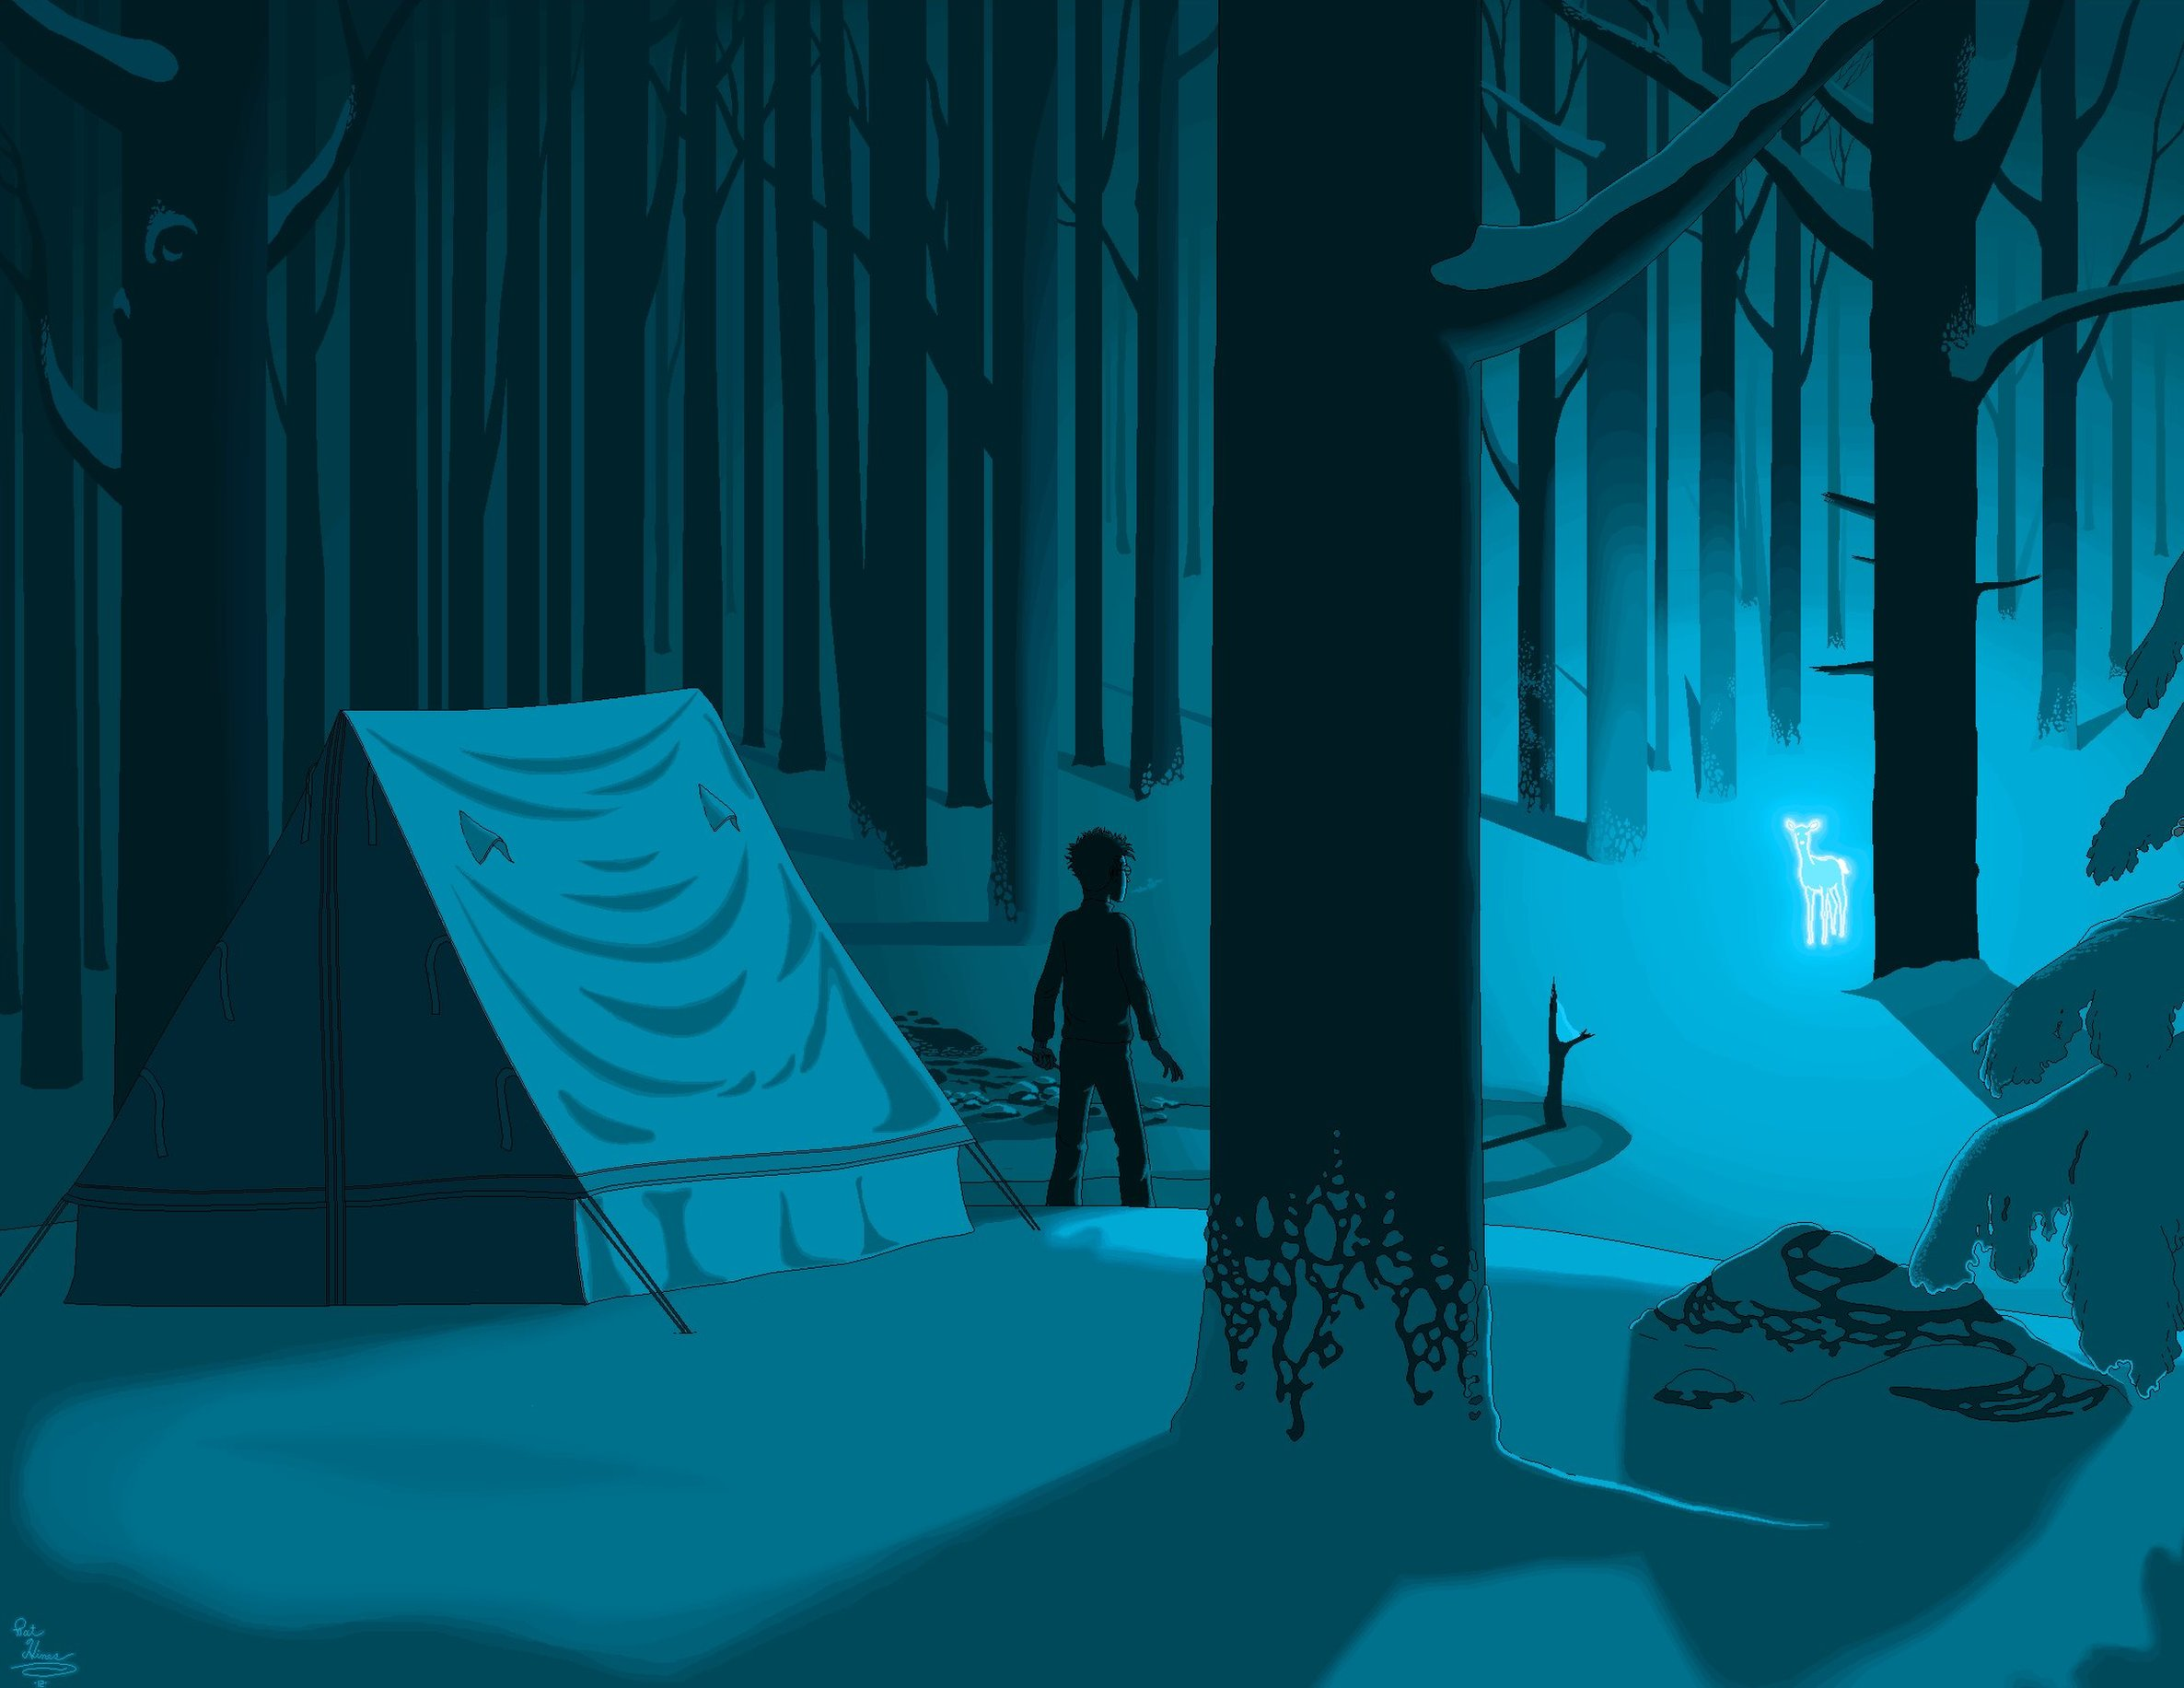 Harry Potter seen standing outside a tent in a forest at night, as a glowing Silver Doe approaches